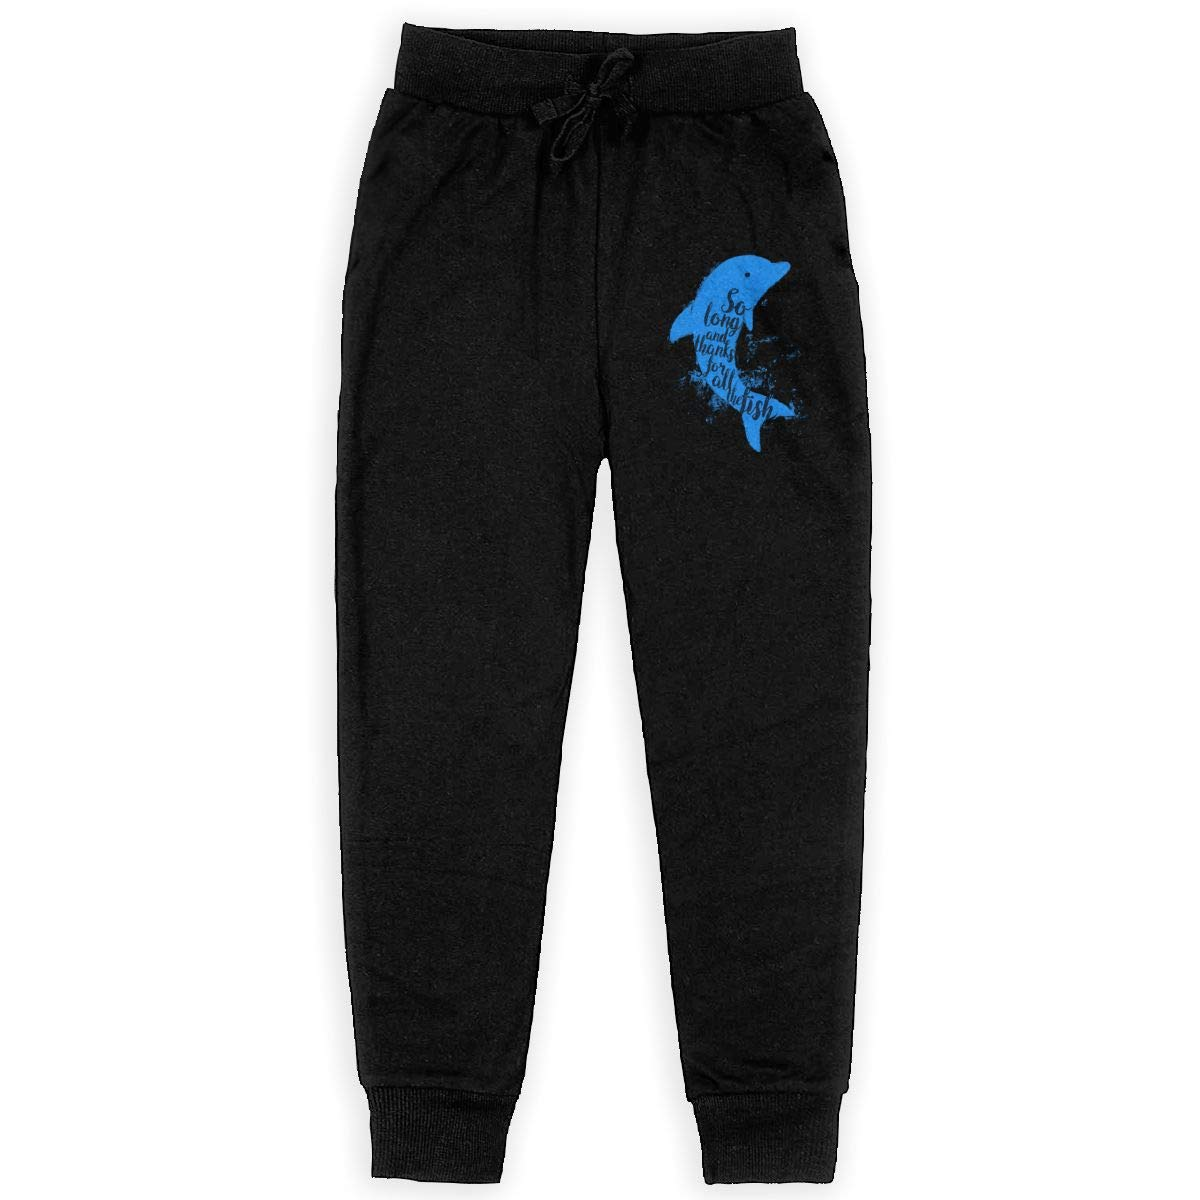 Kim Mittelstaedt Thankful Dolphin Boys Big Active Basic Casual Pants Sweatpants for Boys Black